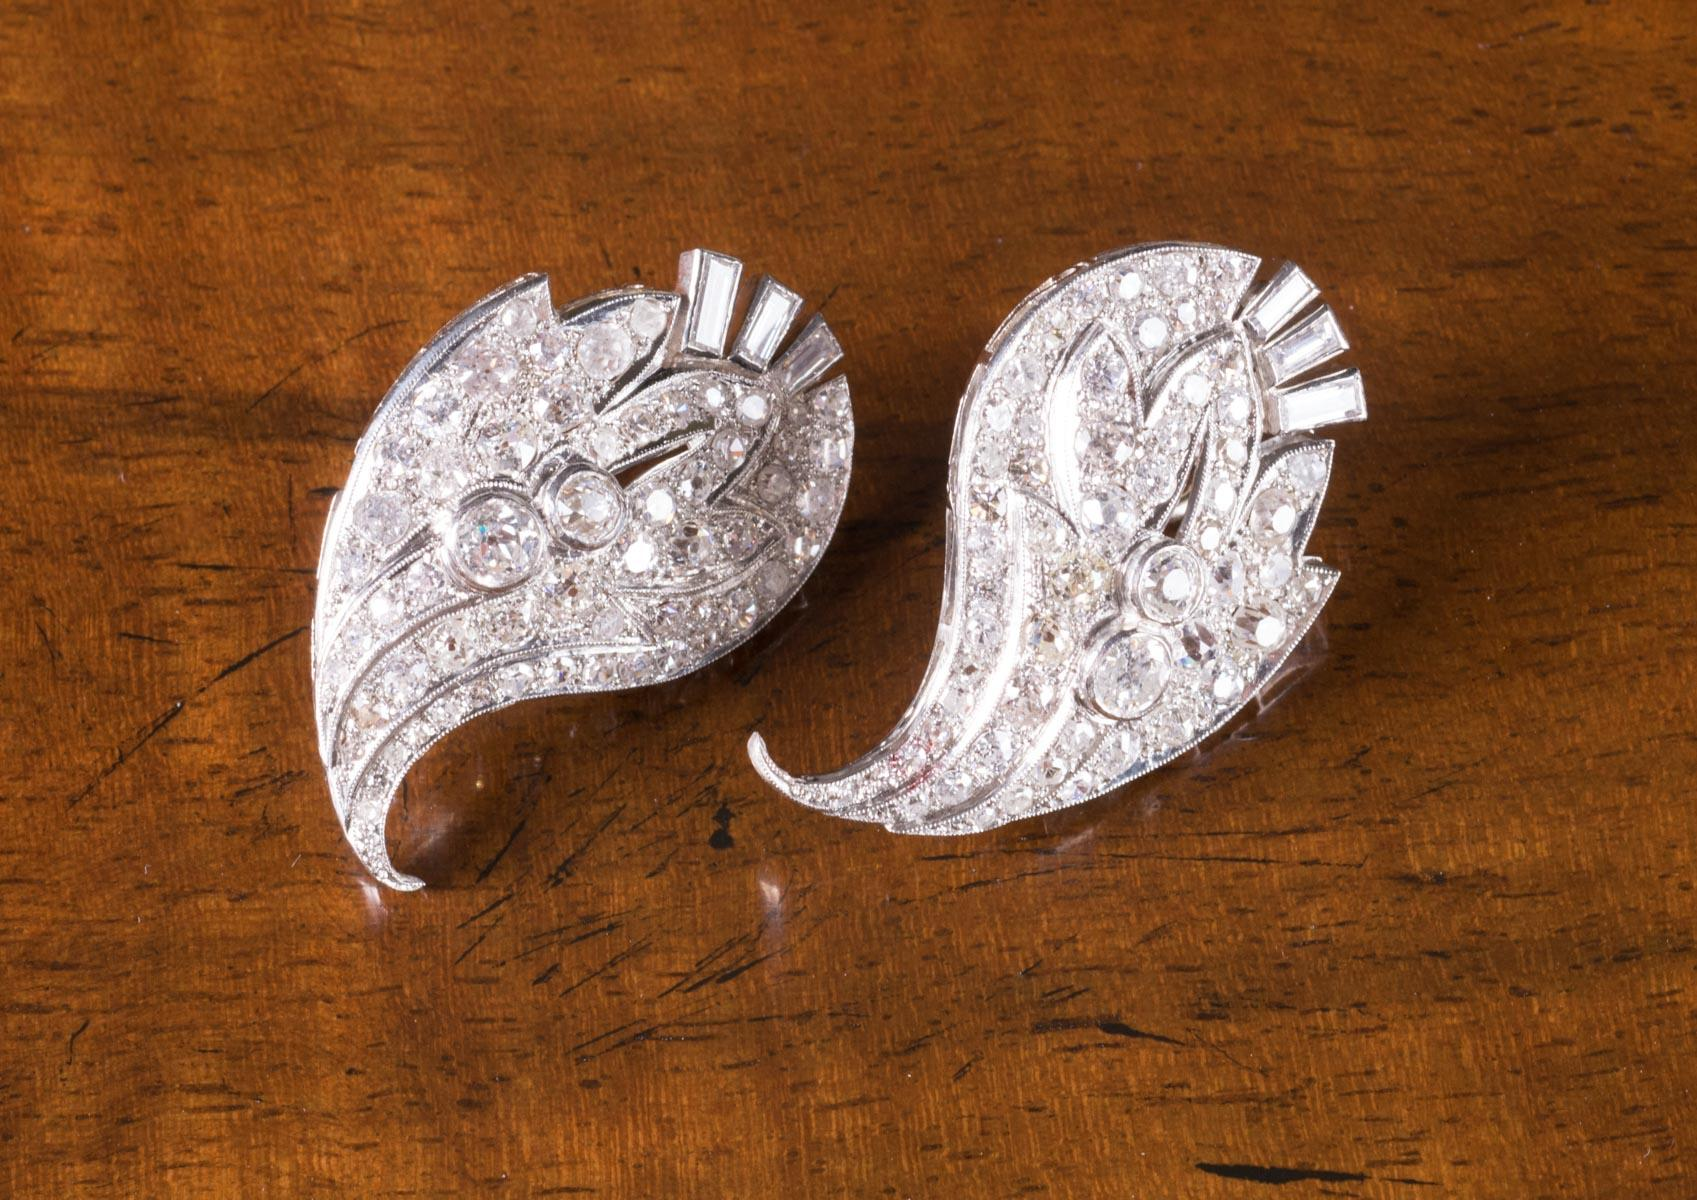 PAIR OF DIAMOND AND PLATINUM EARRINGS, each French